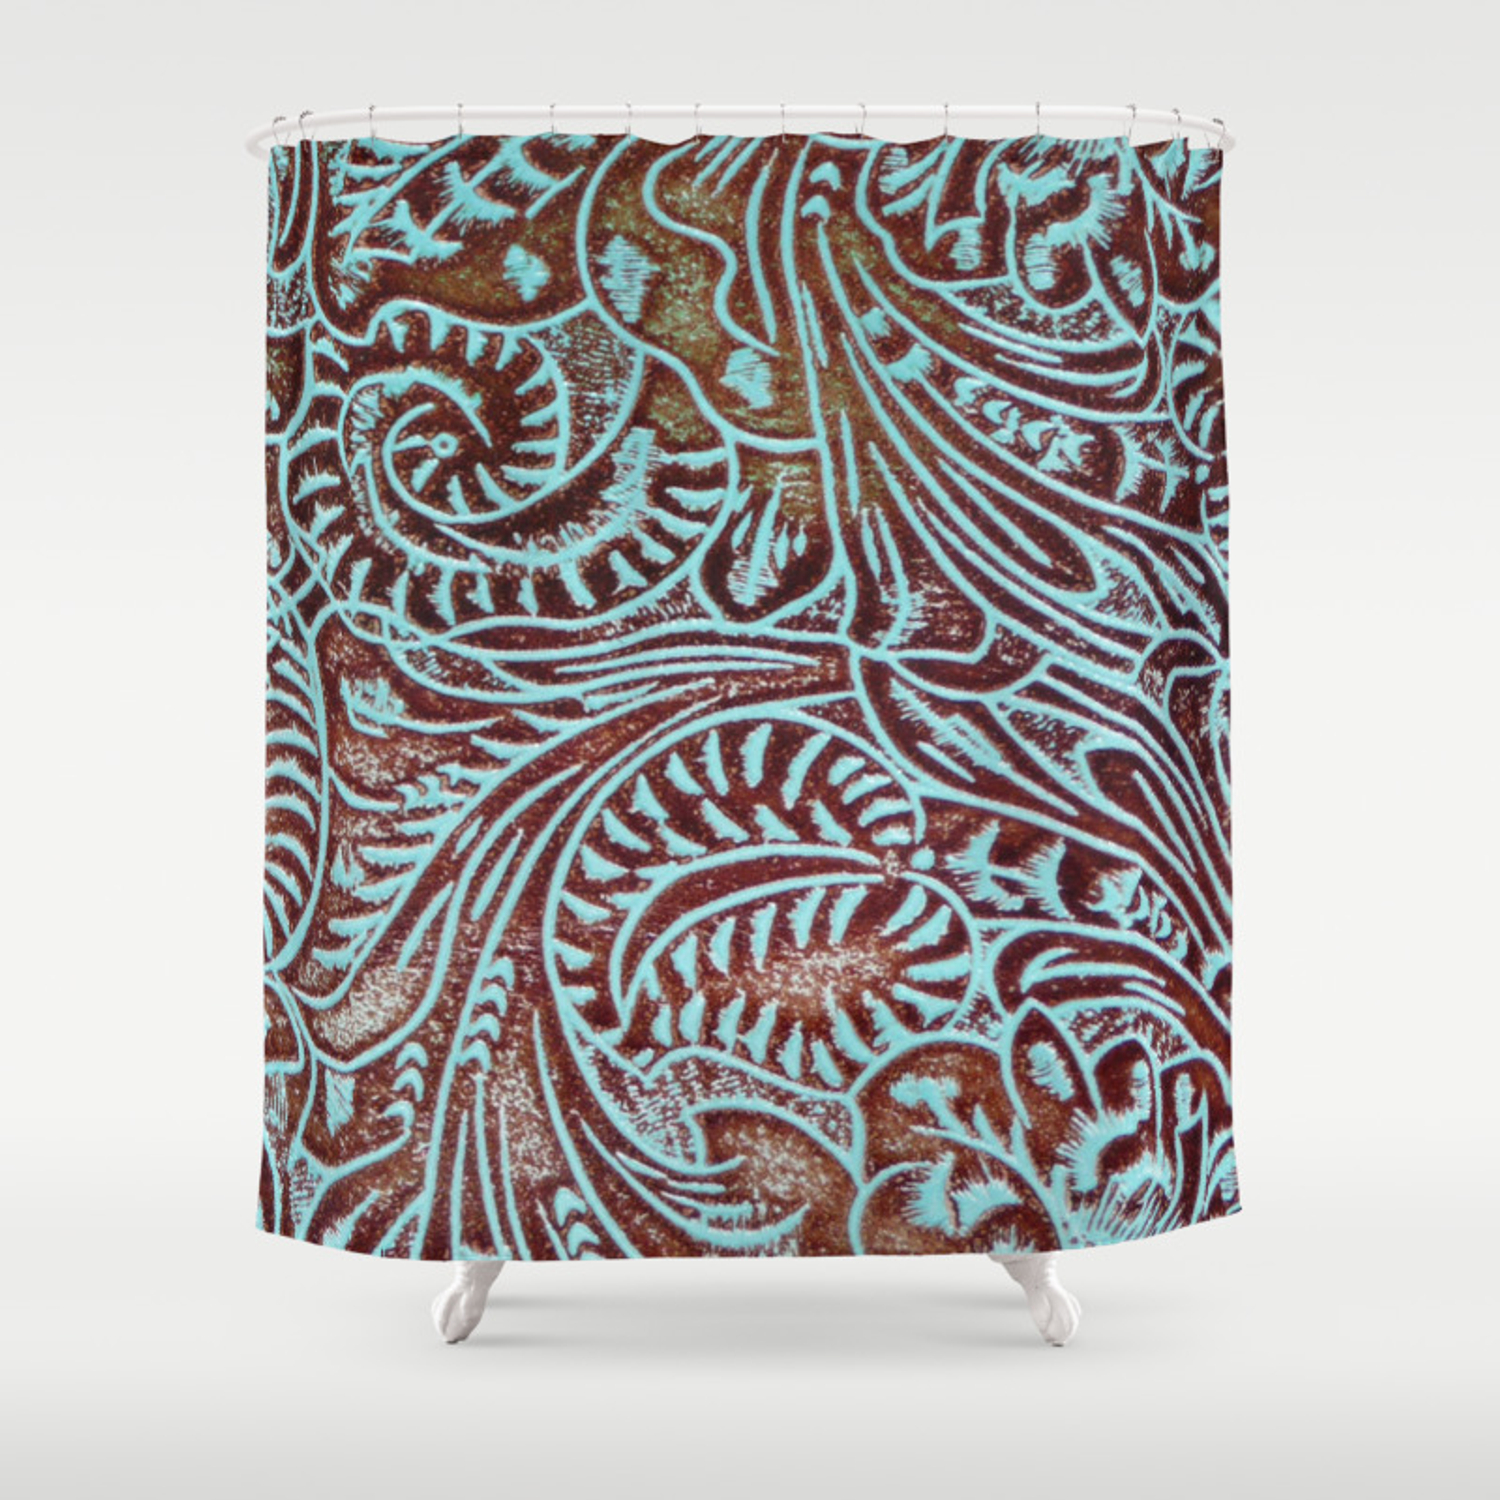 Light Blue Brown Tooled Leather Shower Curtain